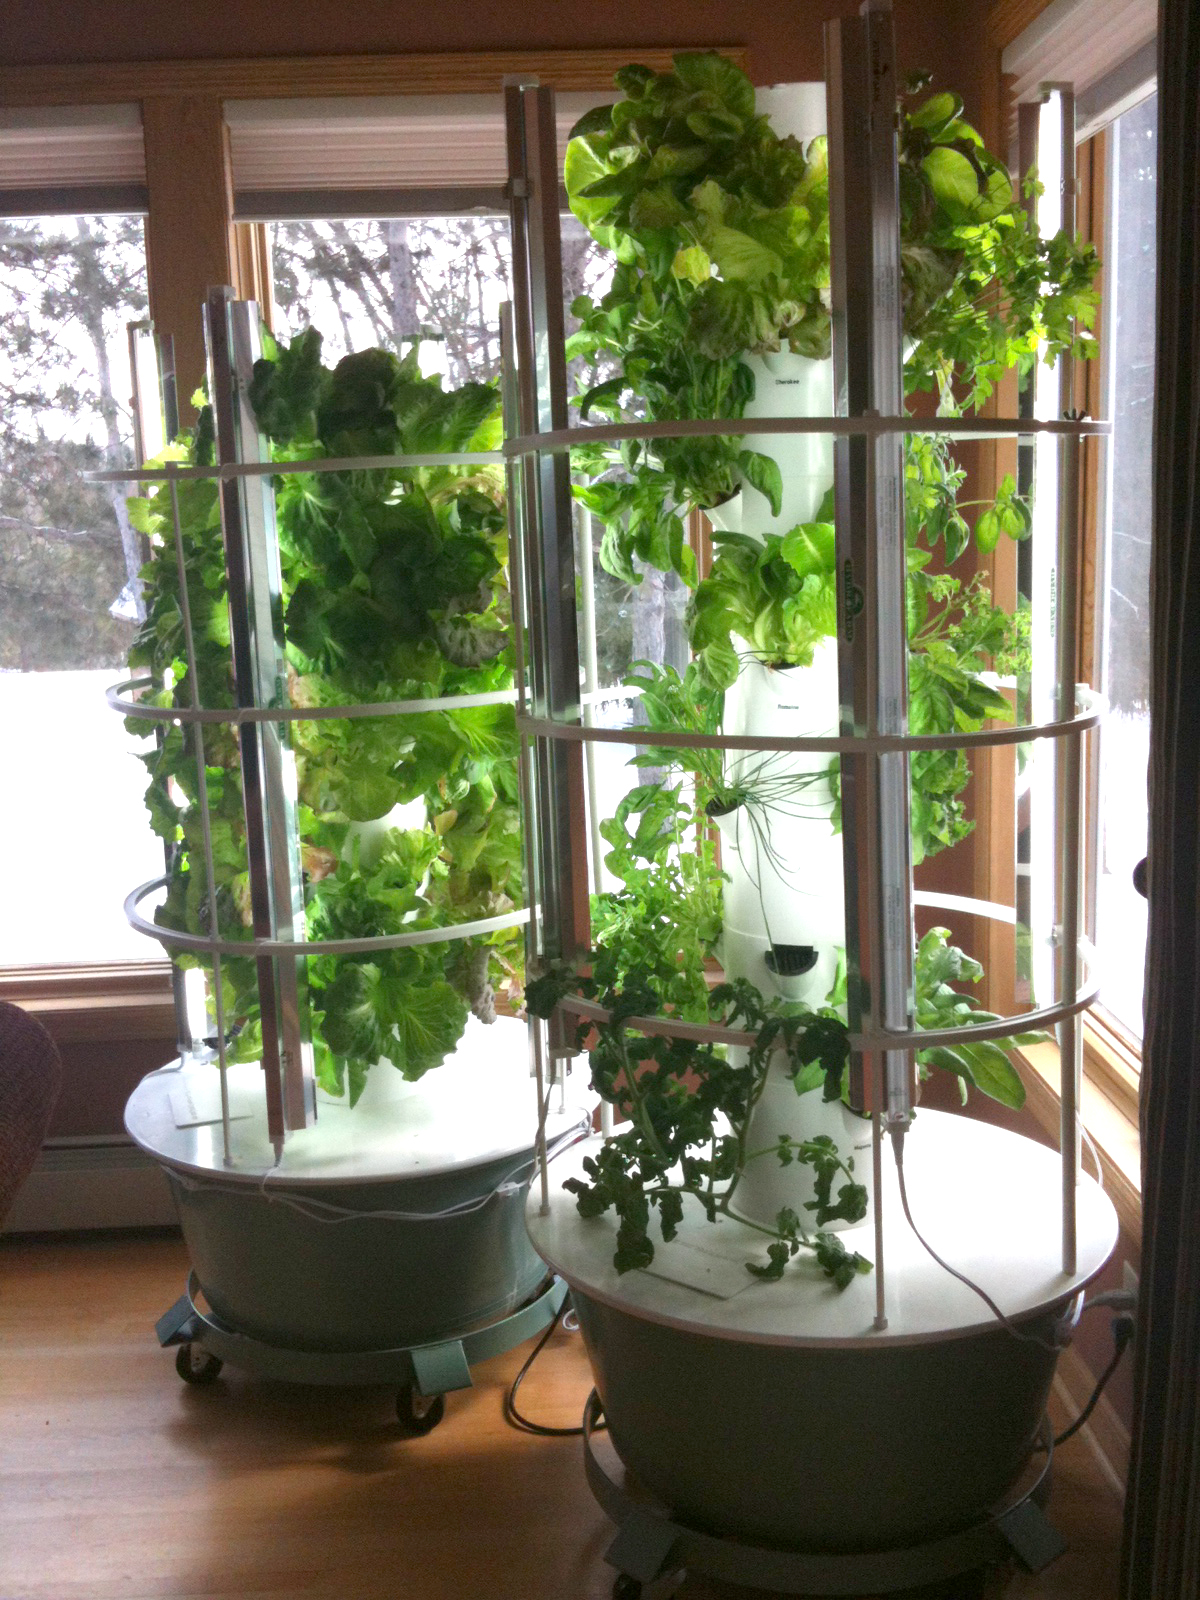 My Latest Healthy Obsession My Tower Garden Elemental Esthetics